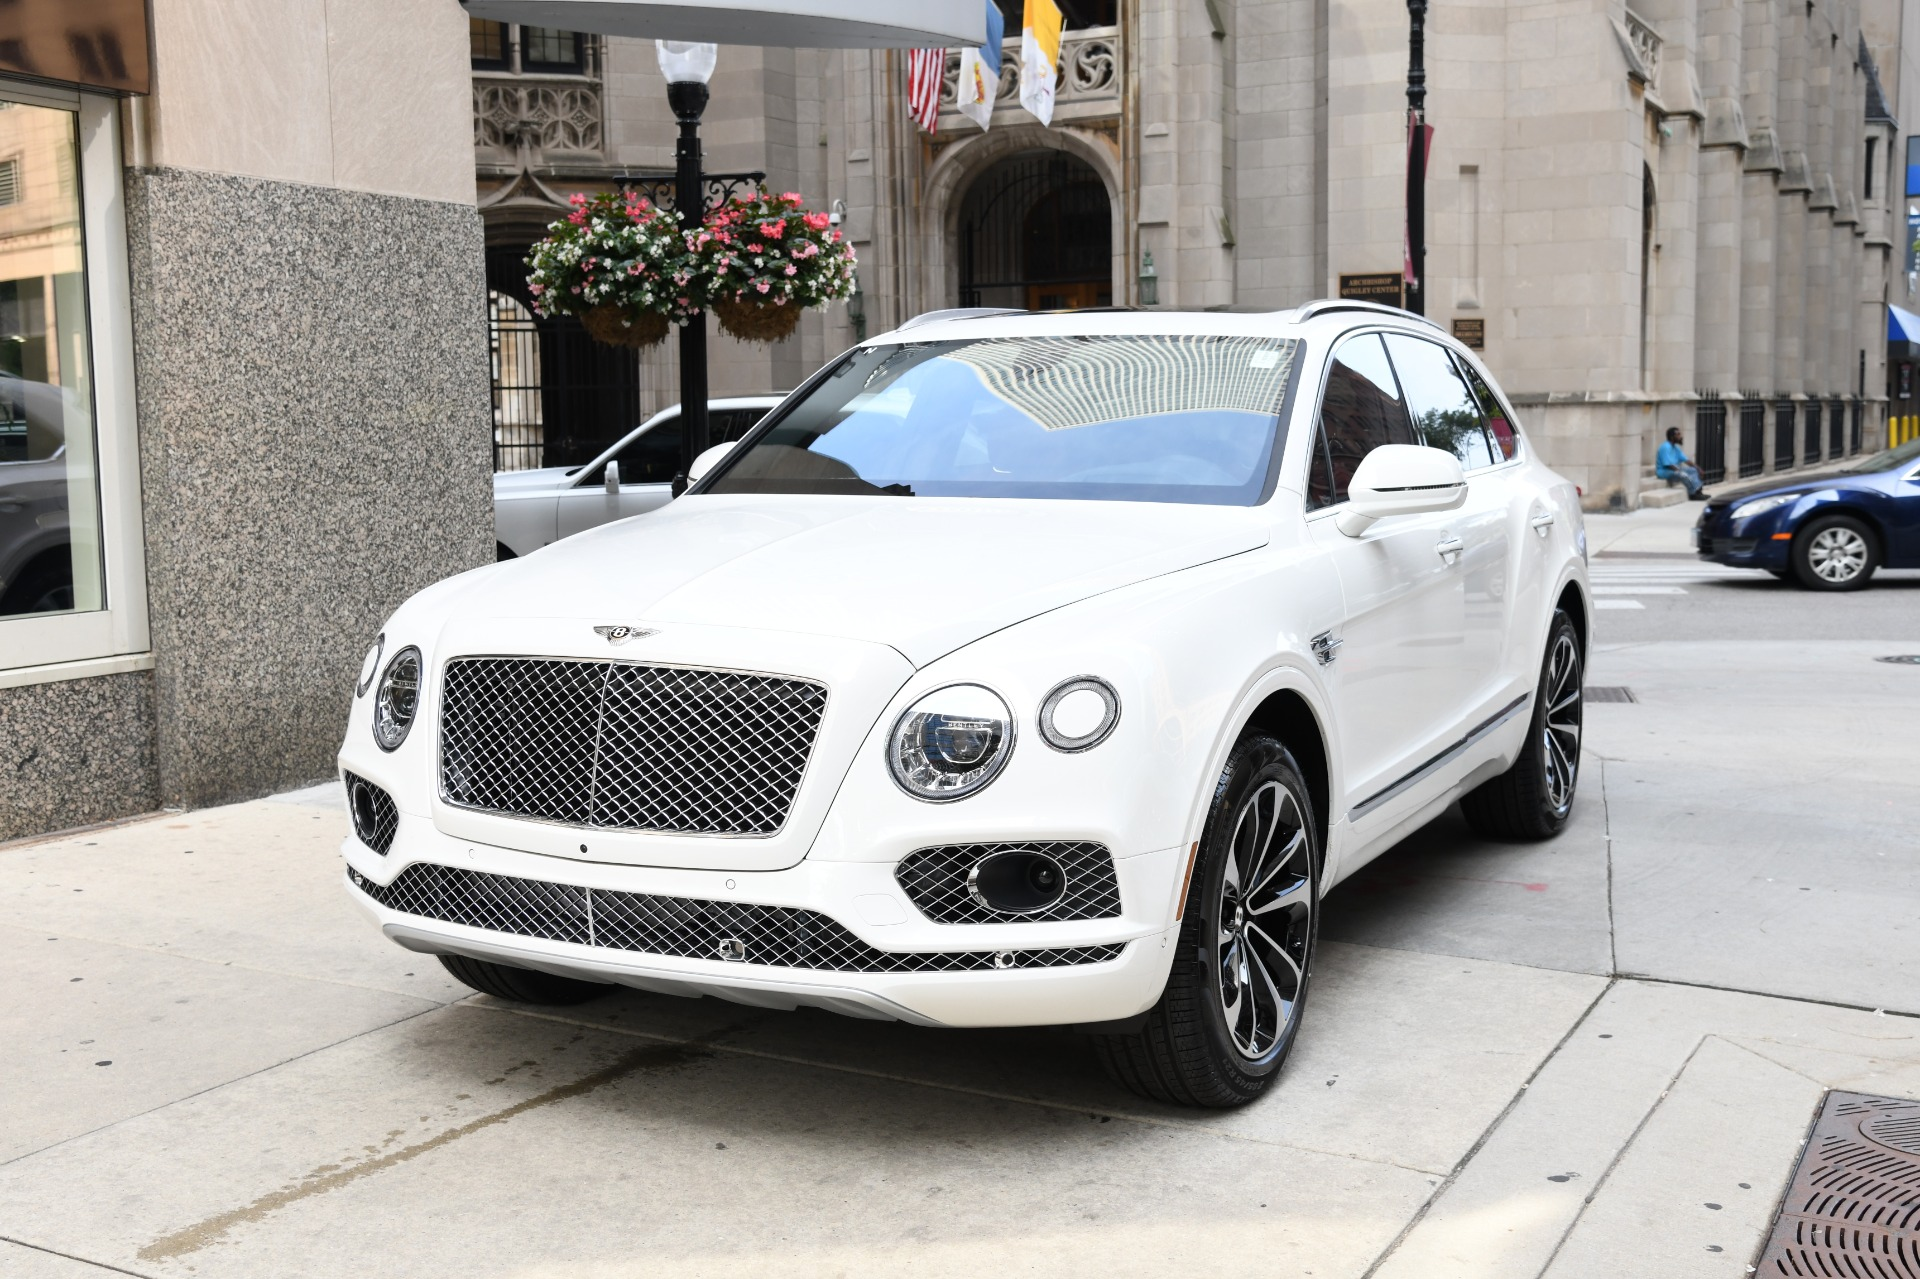 Bentley Bentayga For Sale >> 2020 Bentley Bentayga V8 Stock B1180 For Sale Near Chicago